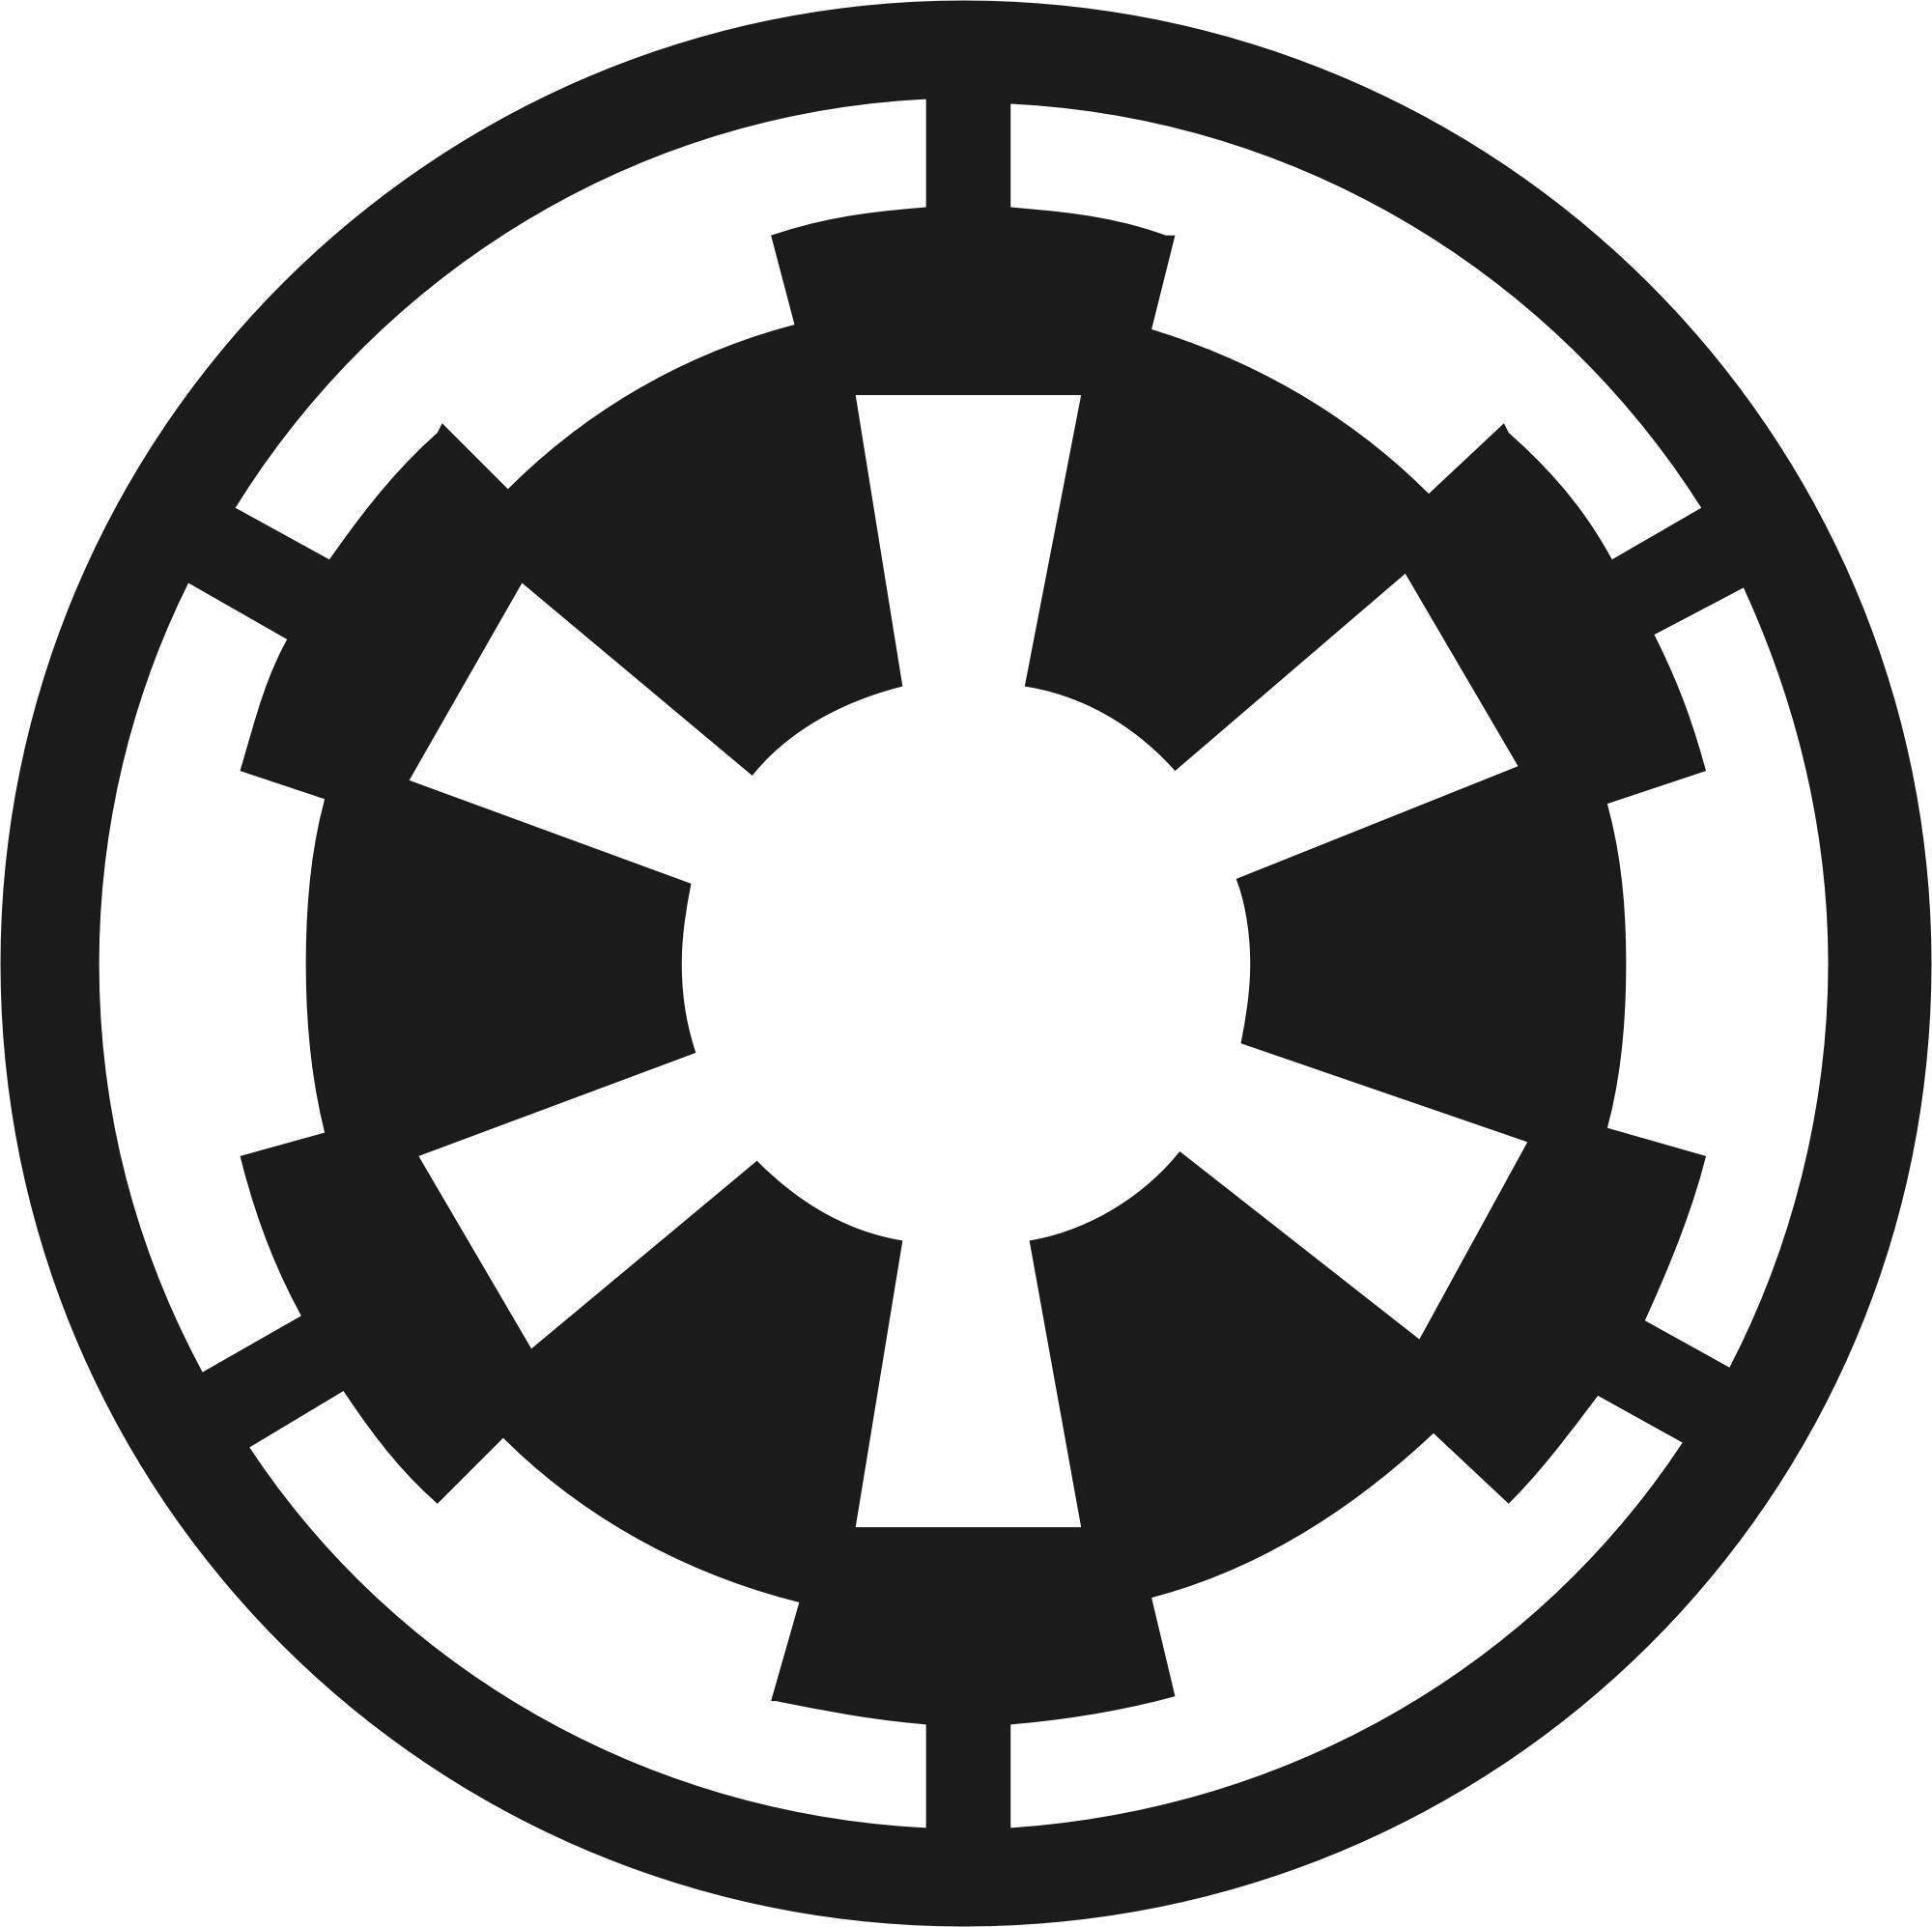 imperialseal.jpg Download free STL file Star Wars Imperial Seal (Scaleable) • 3D printing template, Bountyhunterxx5